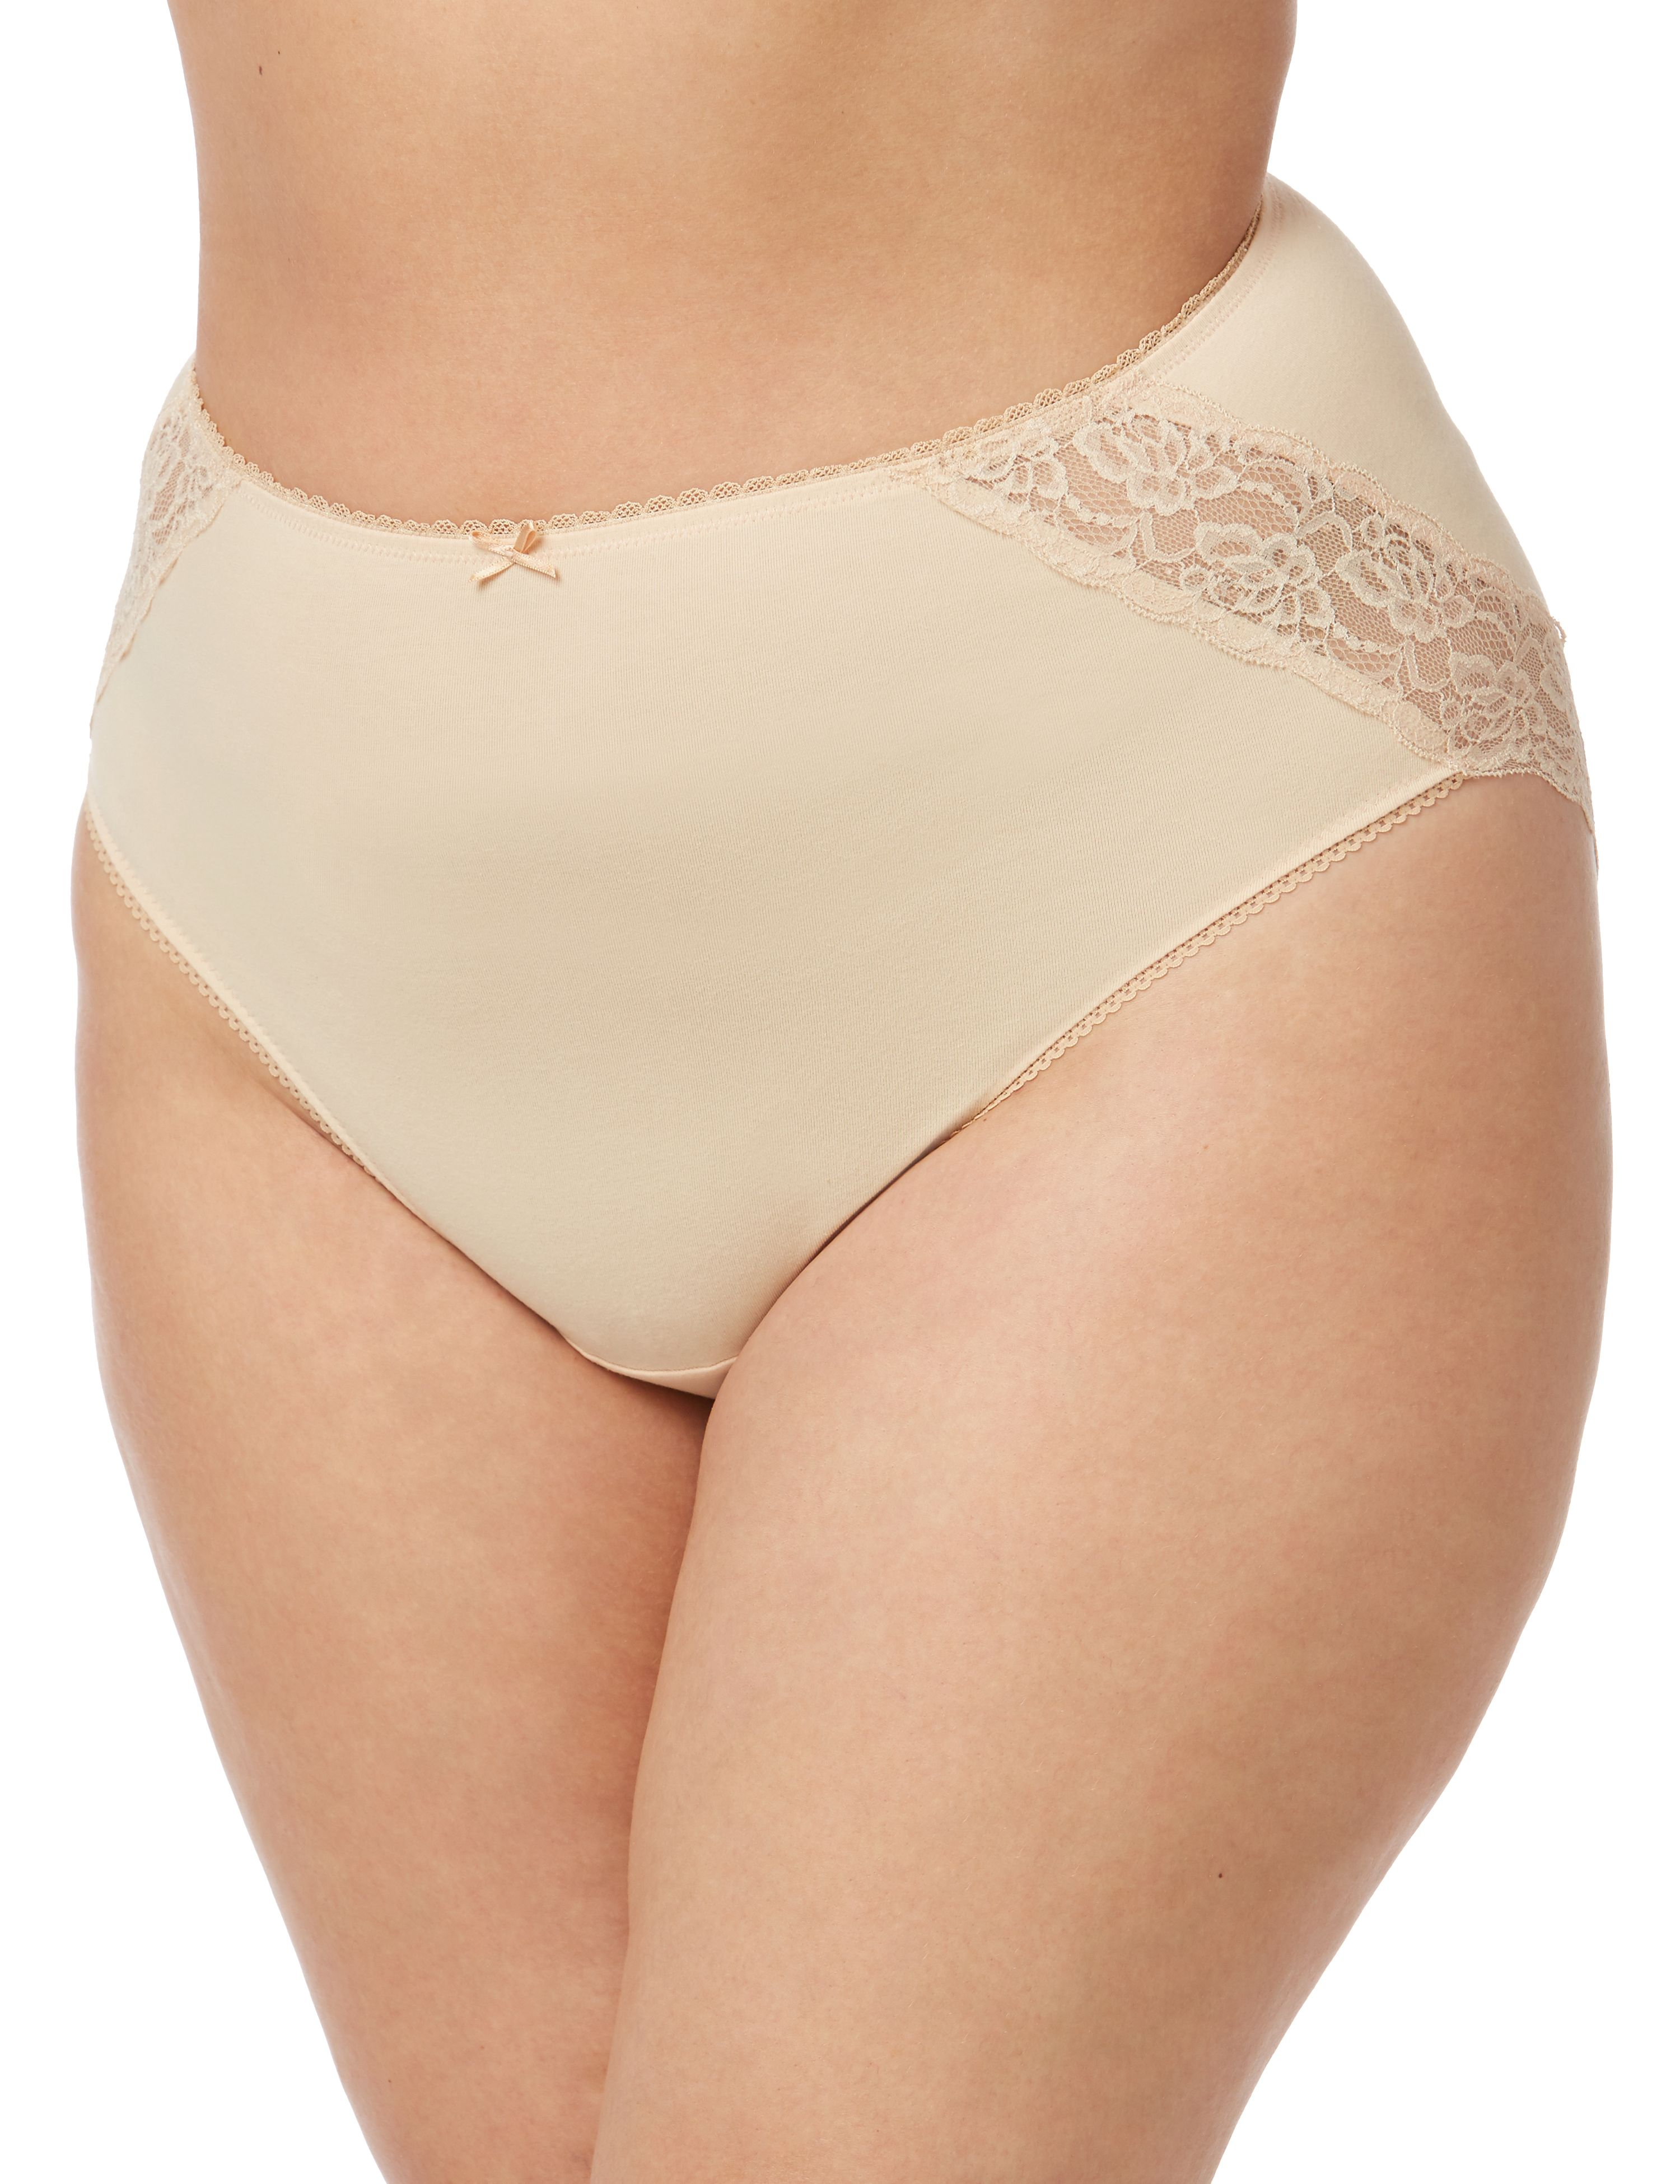 Lace Inset Microfiber Brief 1081209 The Tilly lace microfiber b MP-300094212